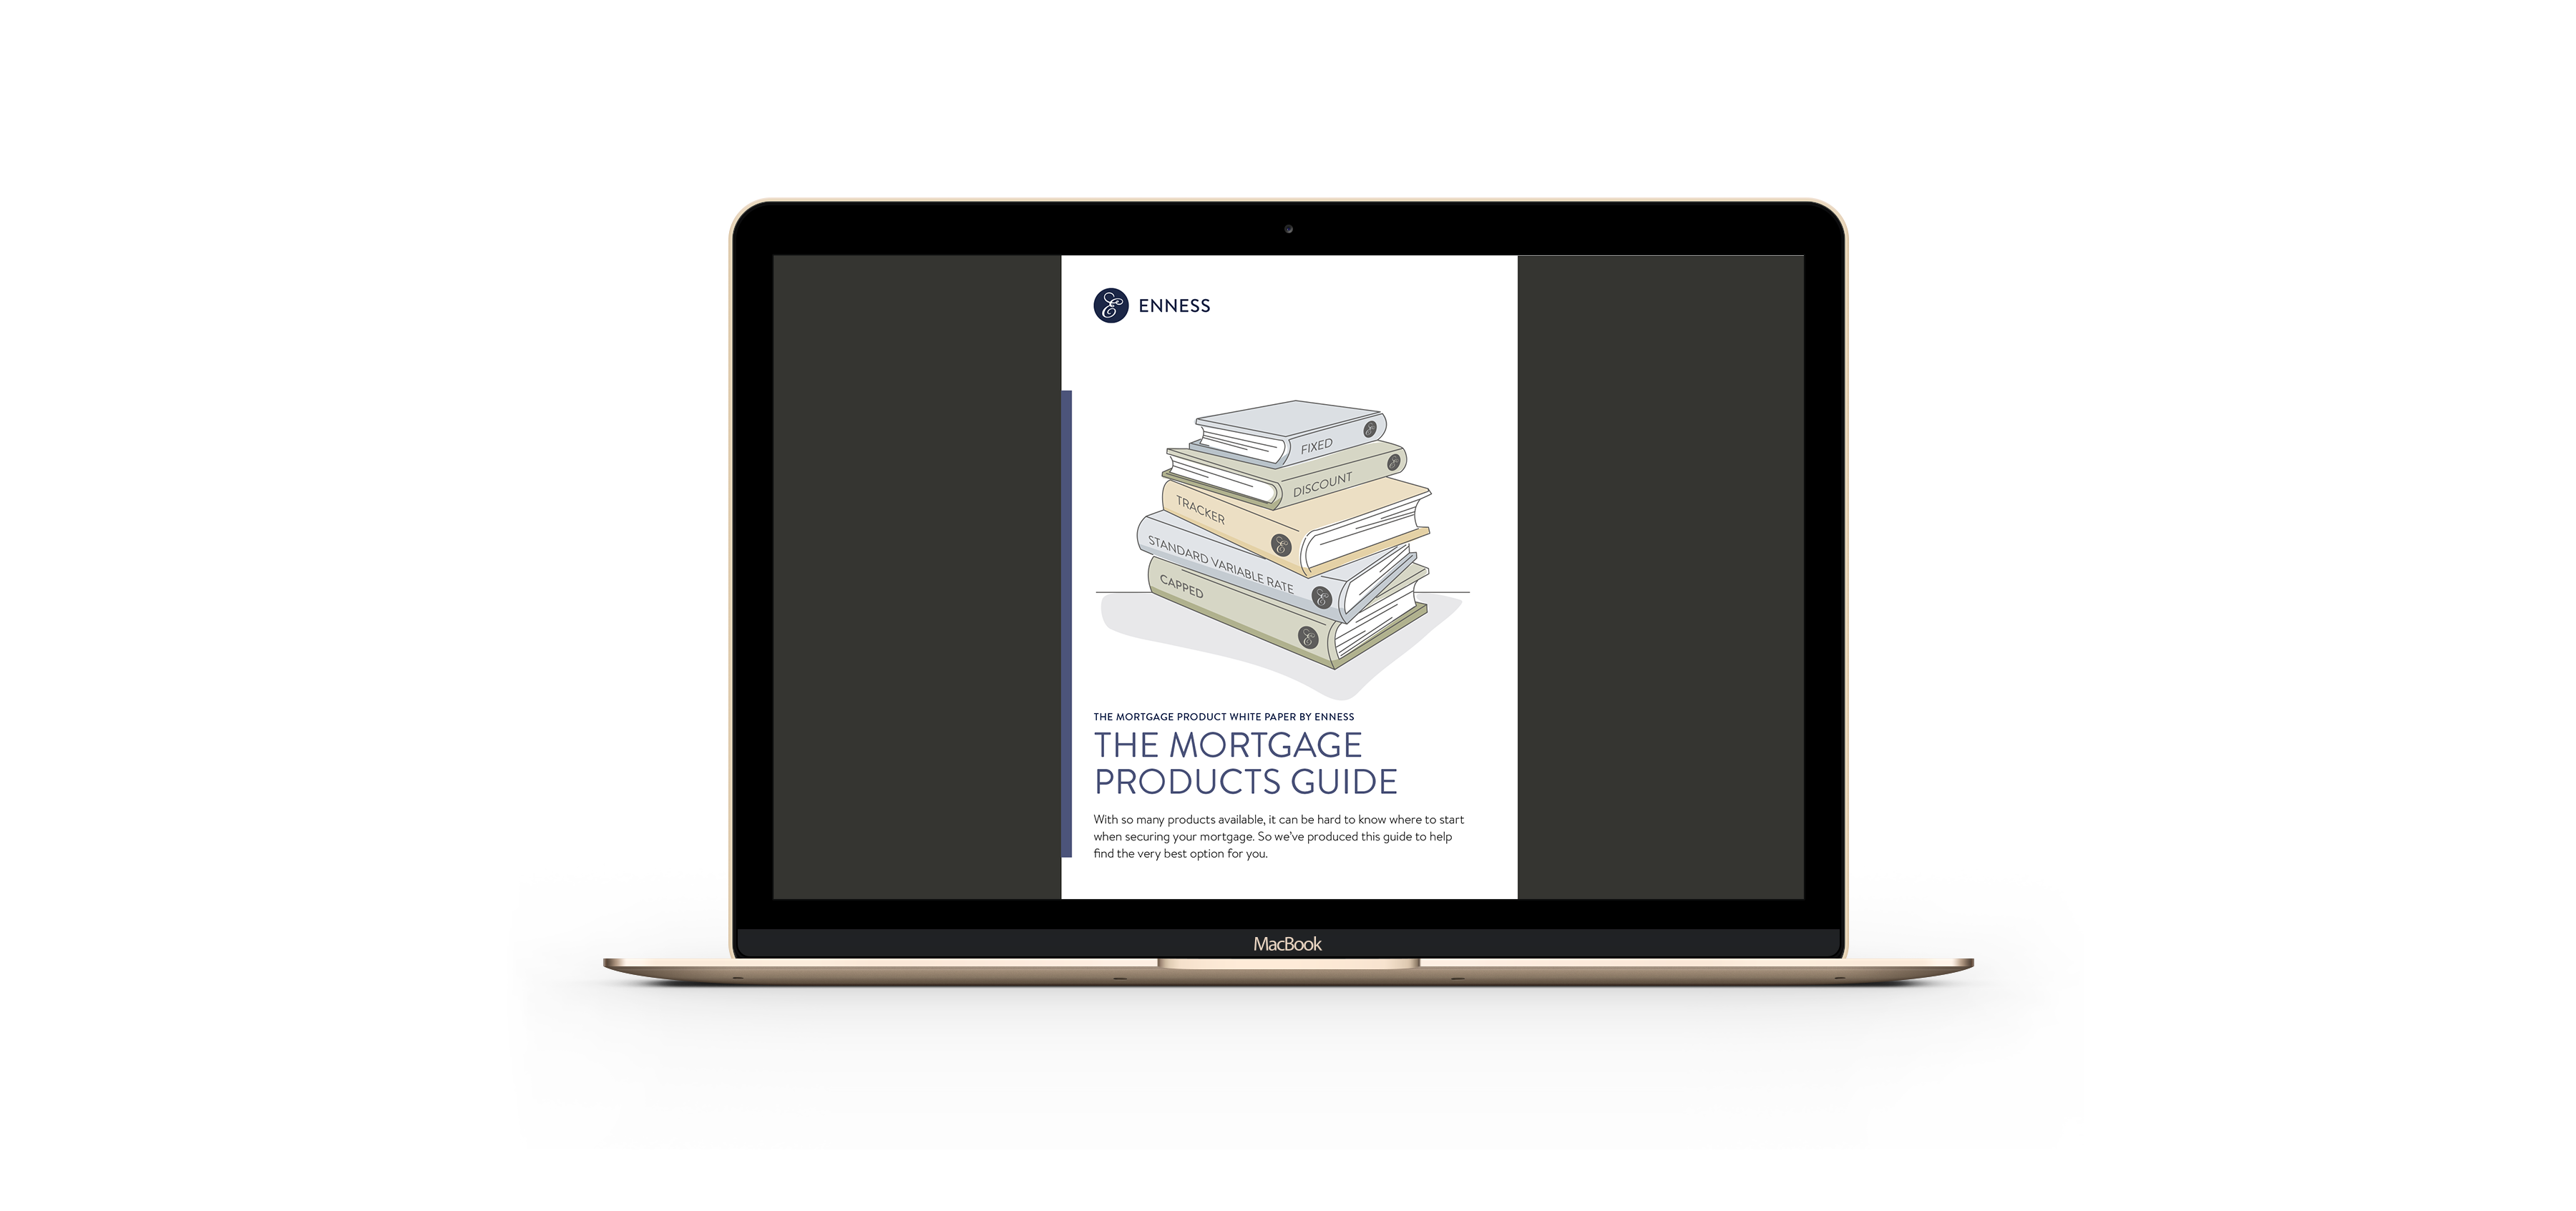 MortgageProduct_Guide_ibook.png